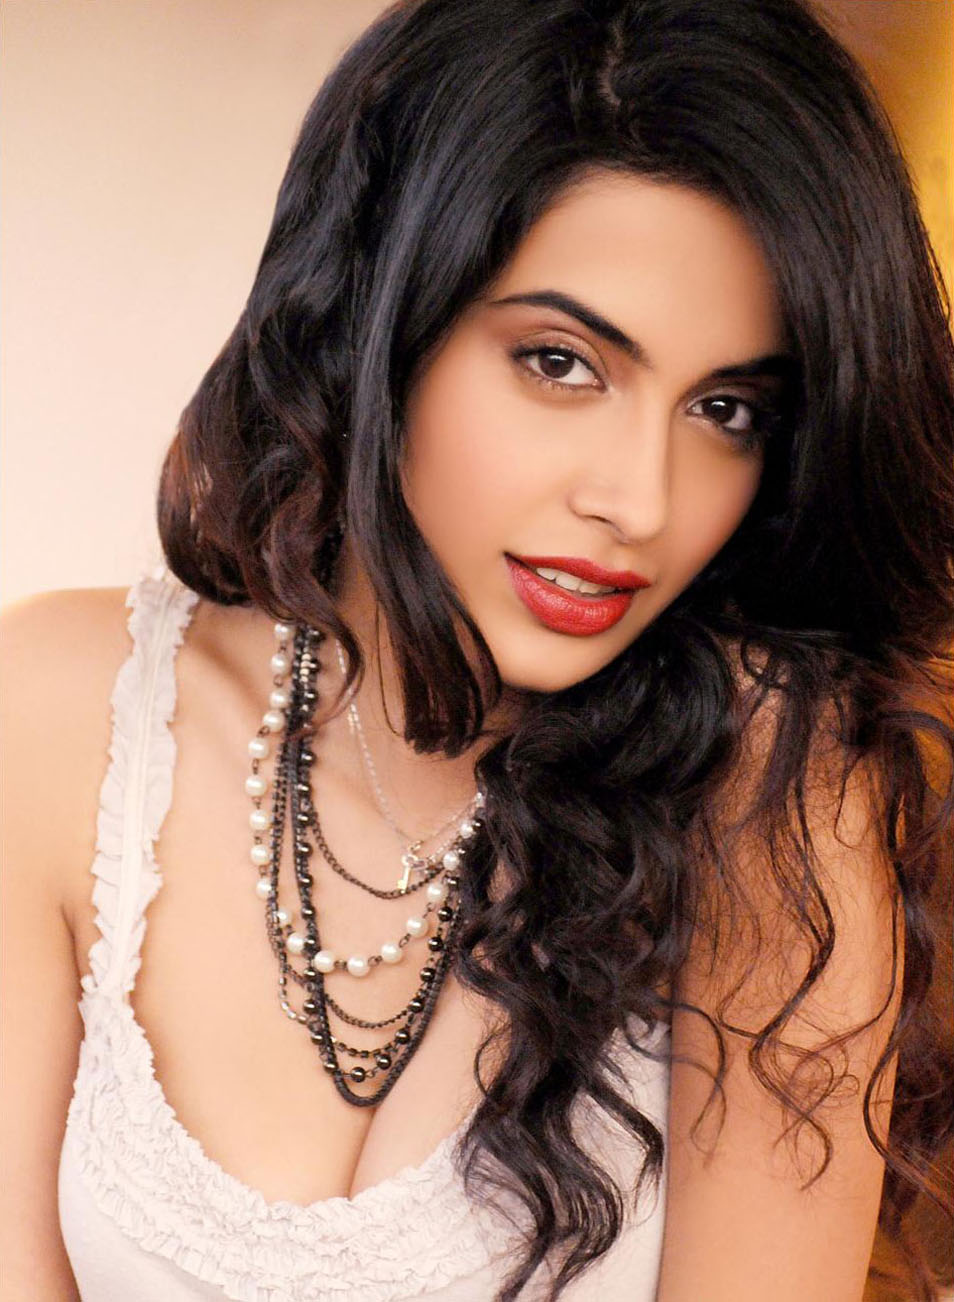 Panja Movie Actress Who Model Sarah Jane Dias Bikini Photo Shoot